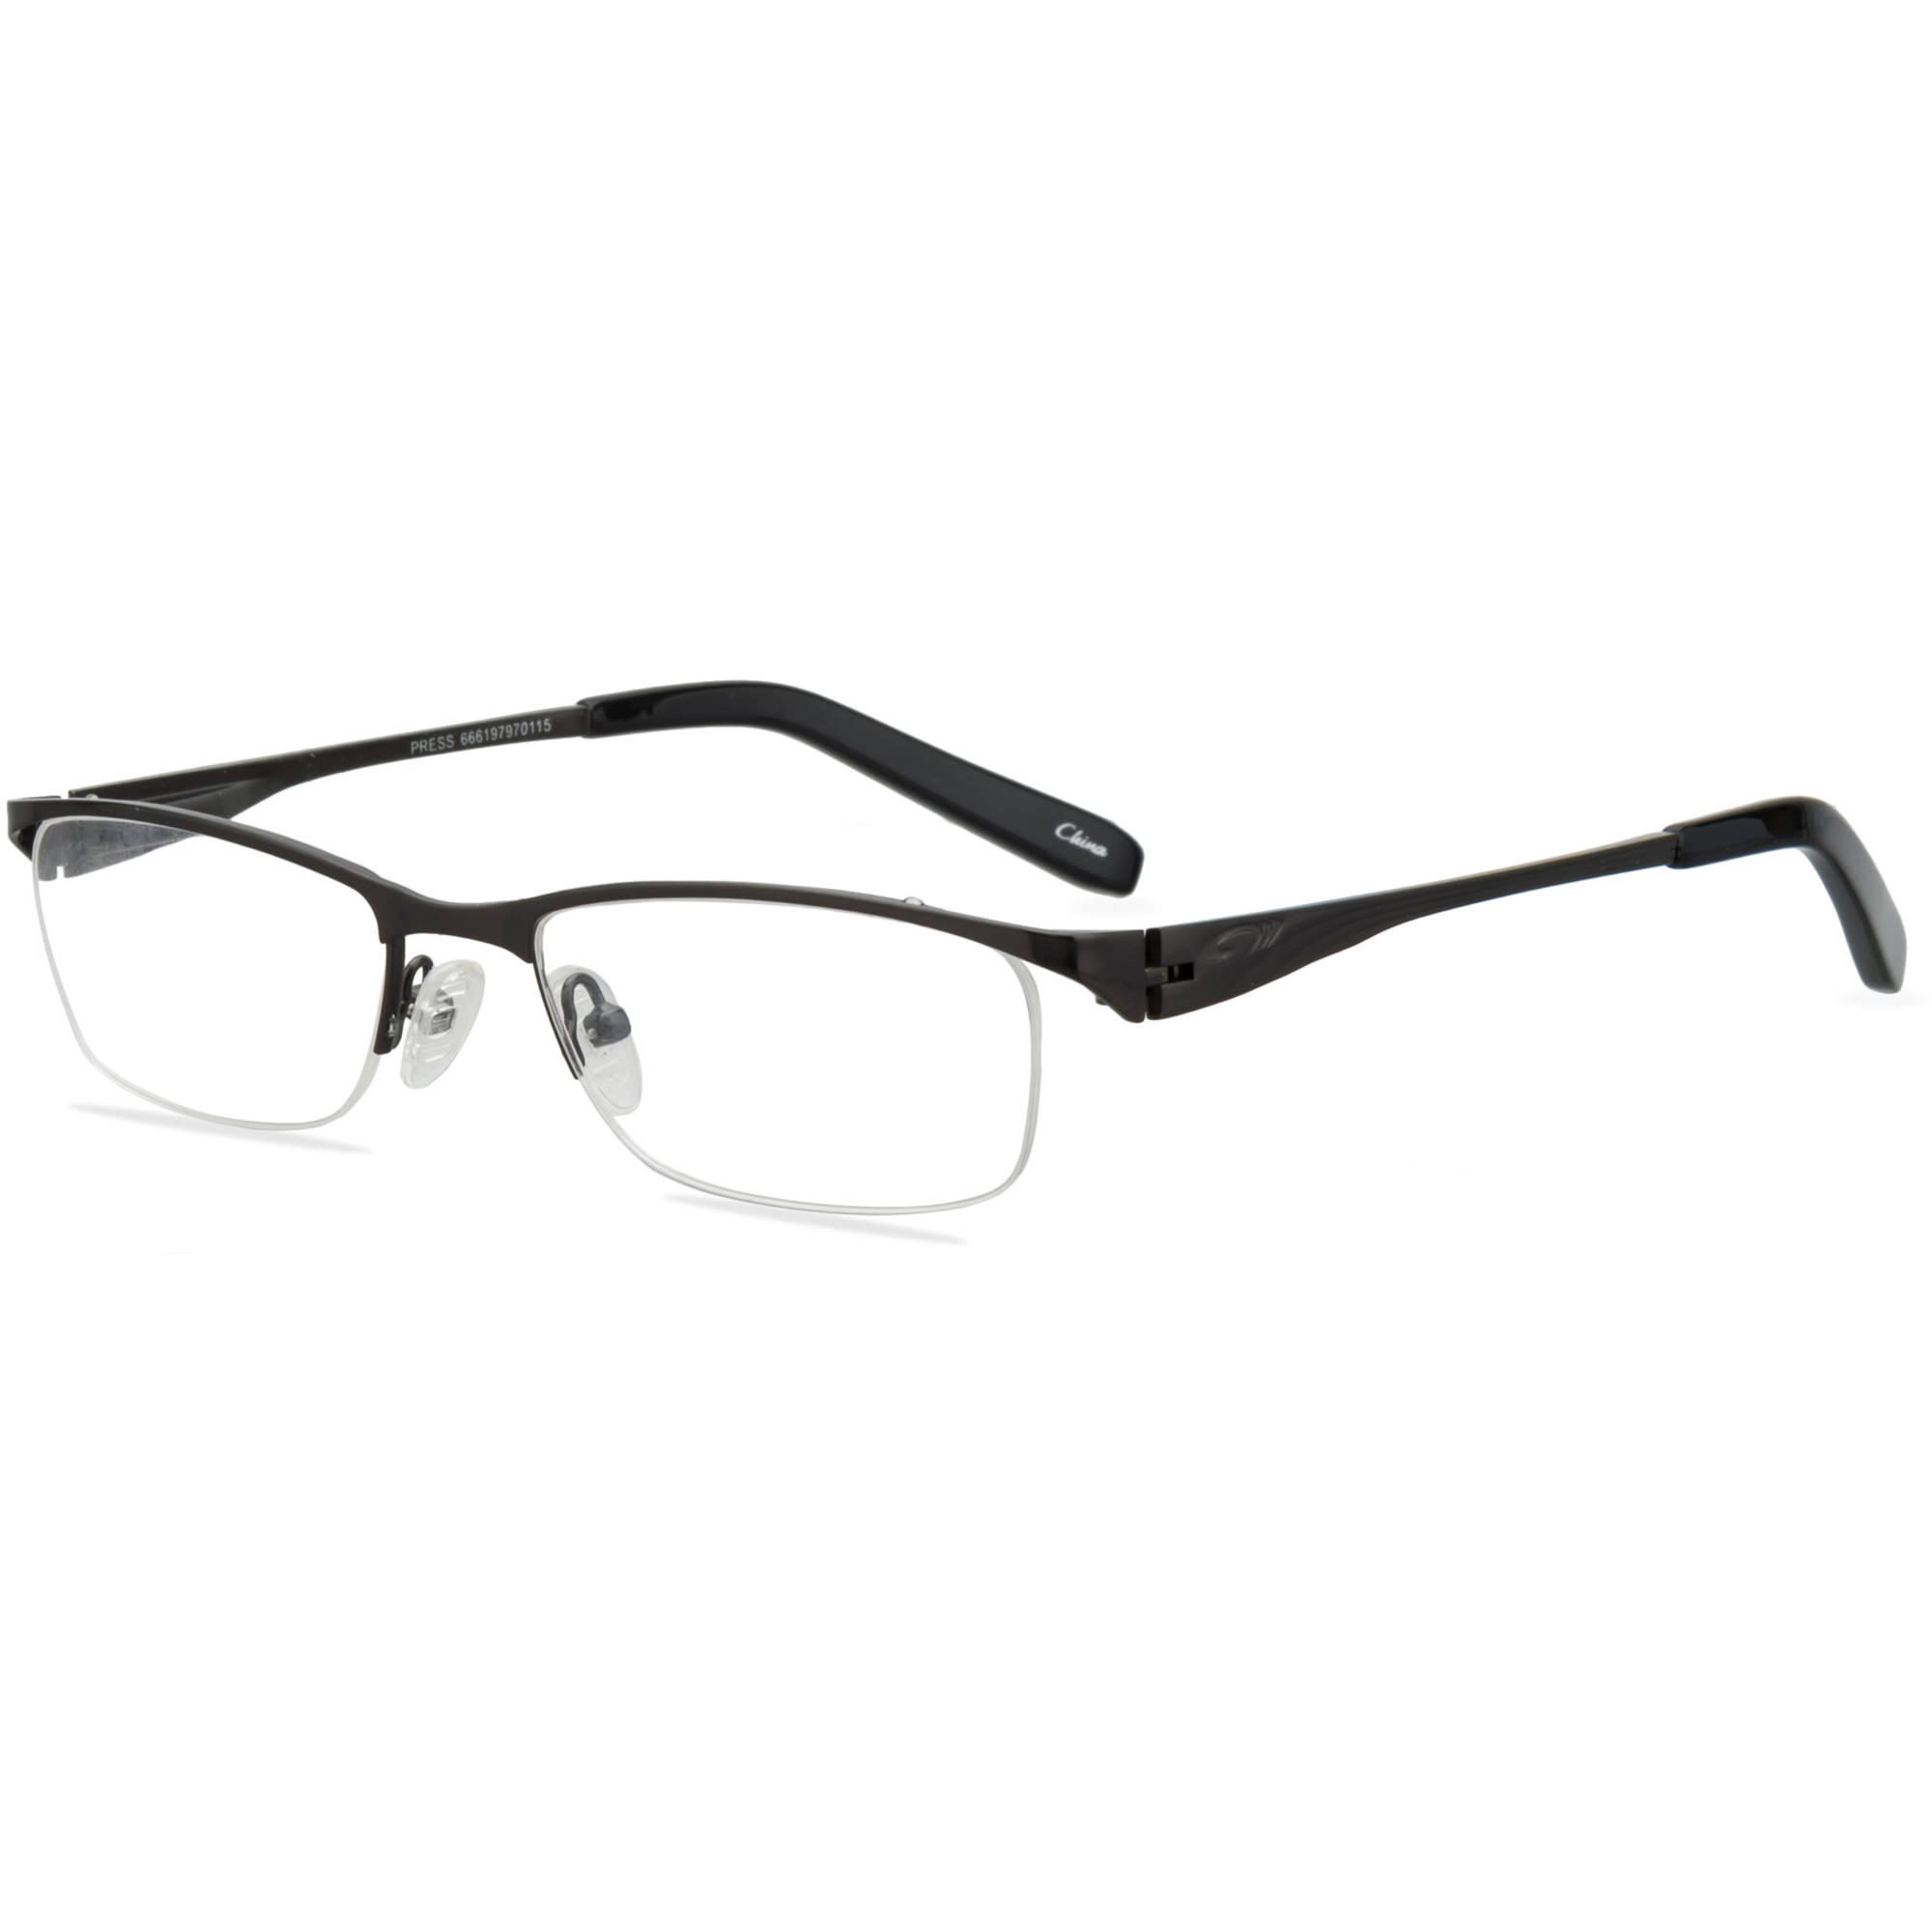 OCTO180 Mens Prescription Glasses, Press Dk. Mgun/Blk - Walmart.com | Tuggl